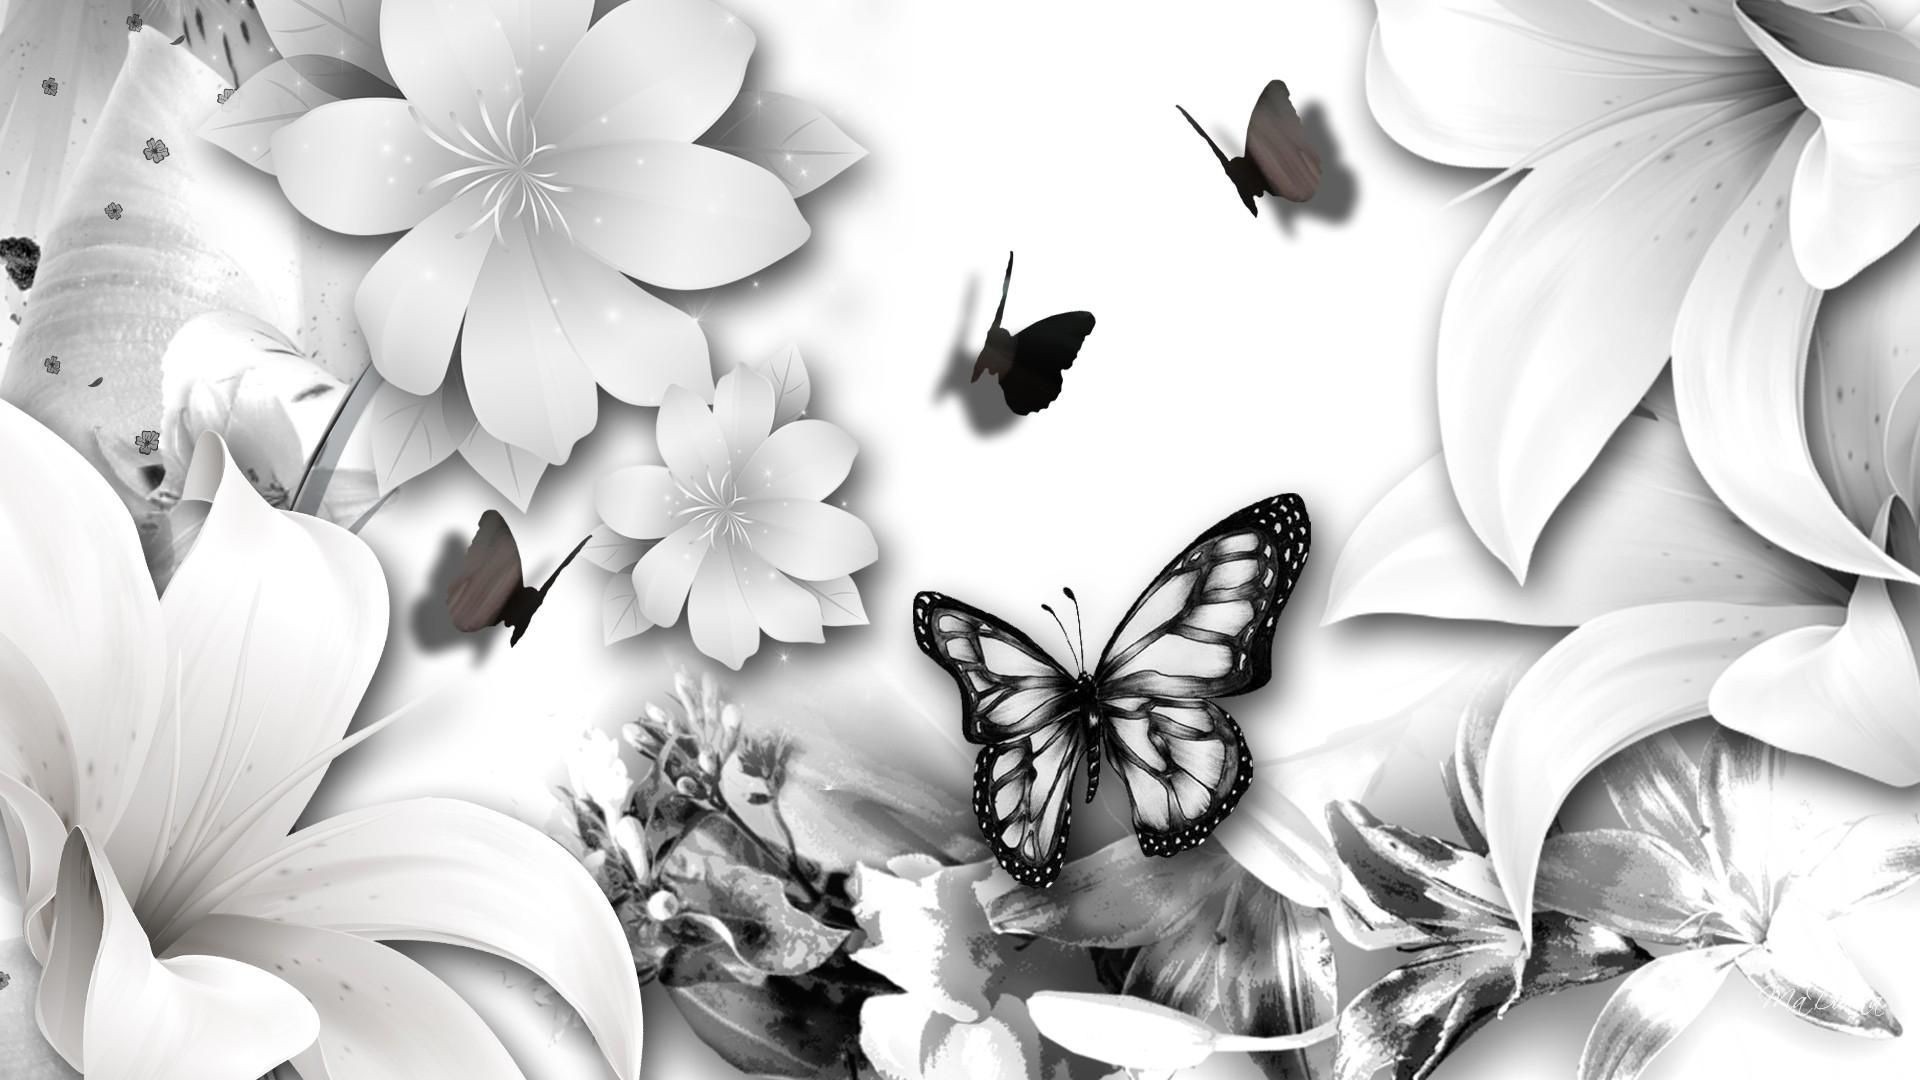 Black And White Floral wallpaper photo hd